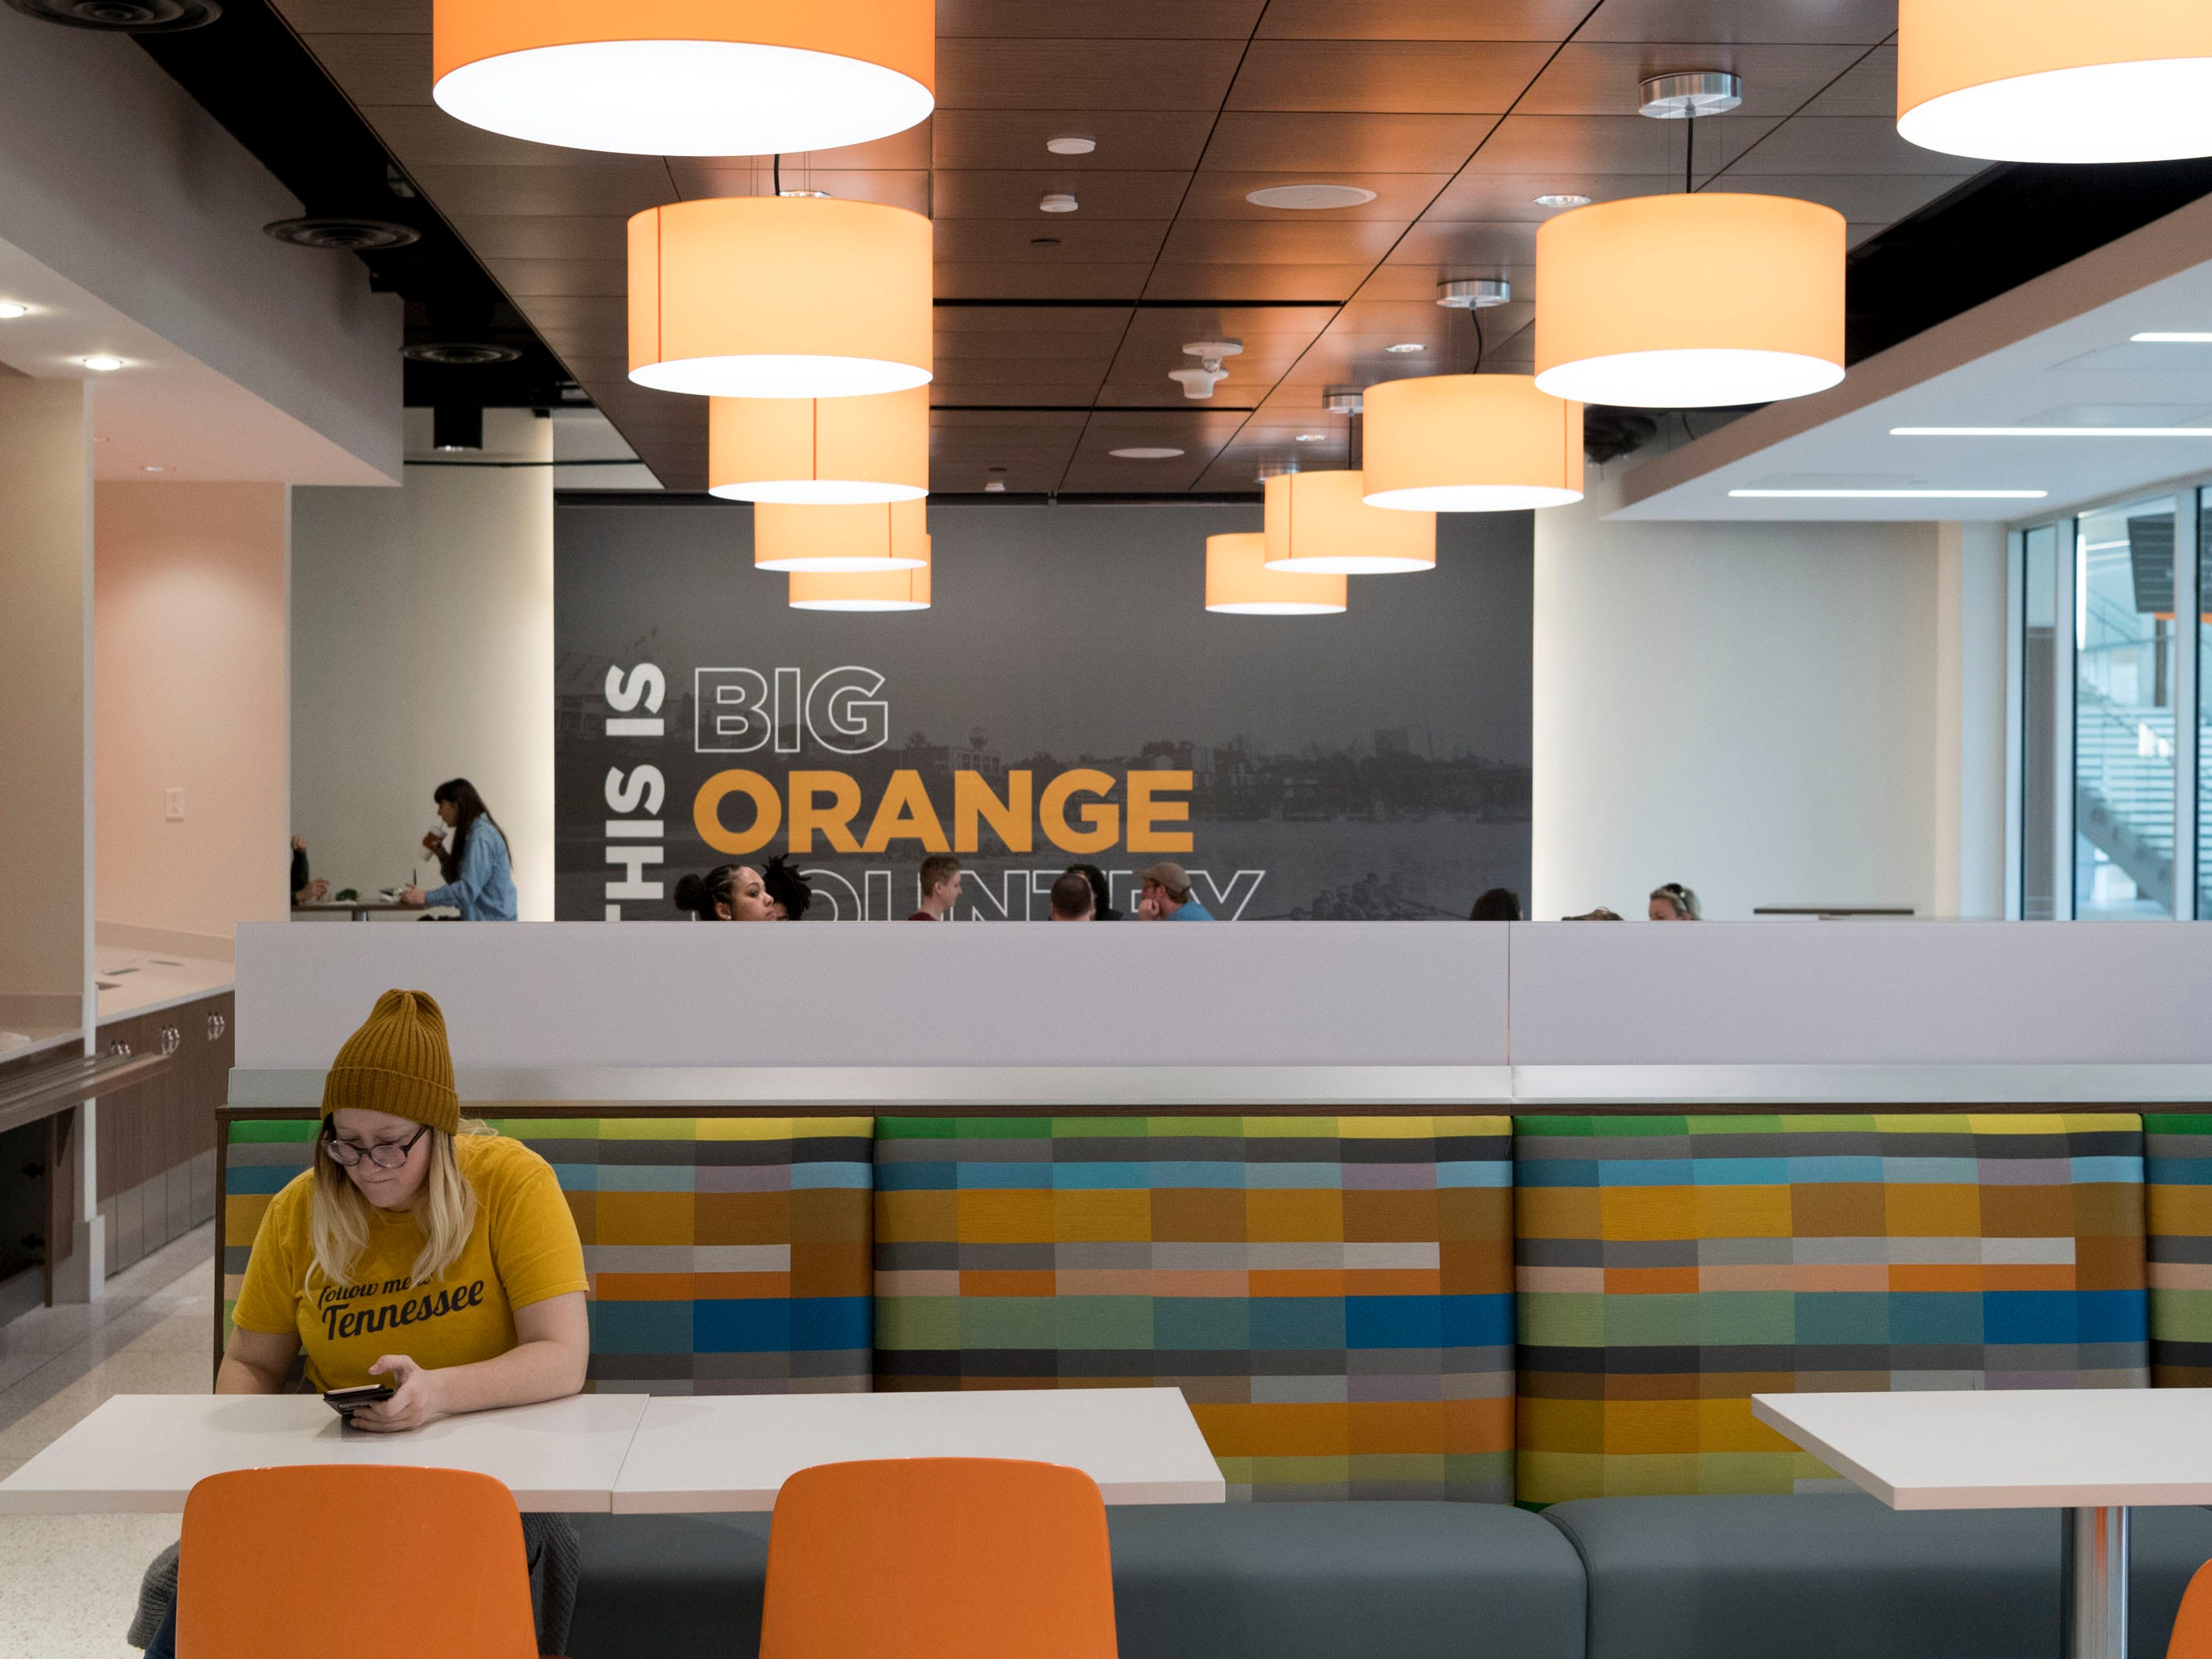 The dining area of the Steak 'n Shake eater inside UT's Student Union on Monday, January 7, 2019.